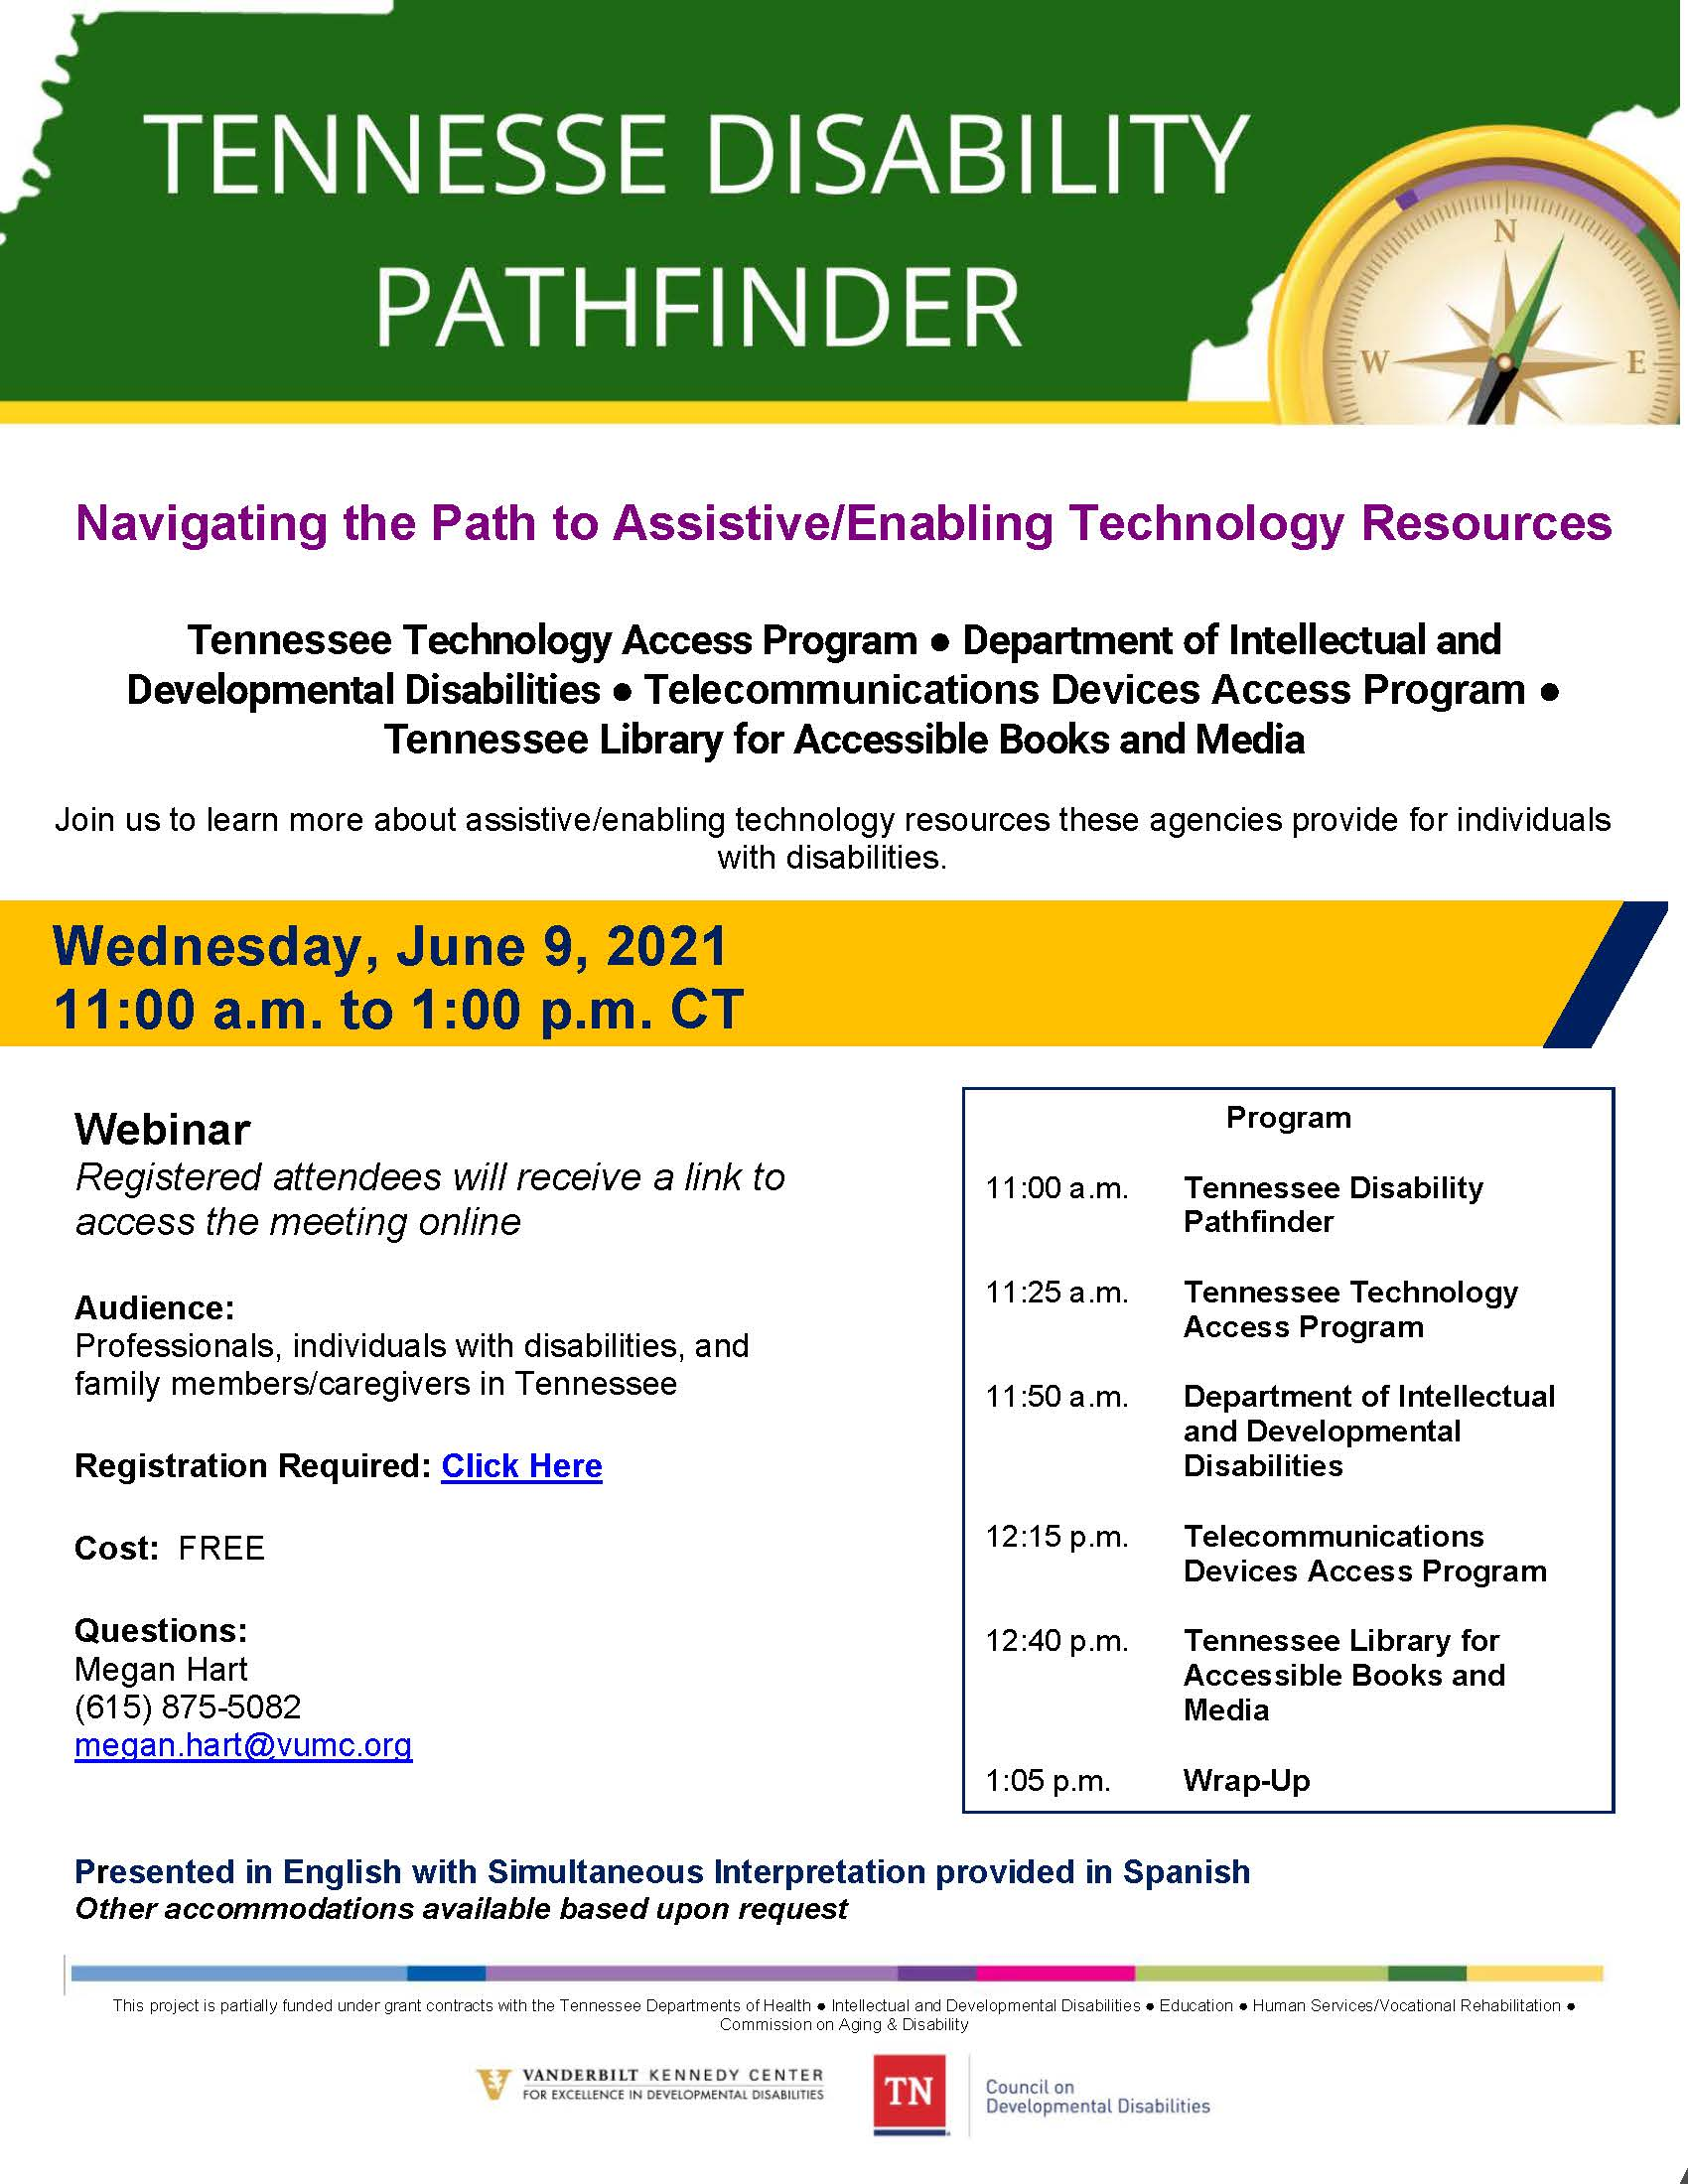 """Infographic for TN Pathfinder's """"Navigating the Path to Assistive/Enabling Technology Resources."""""""